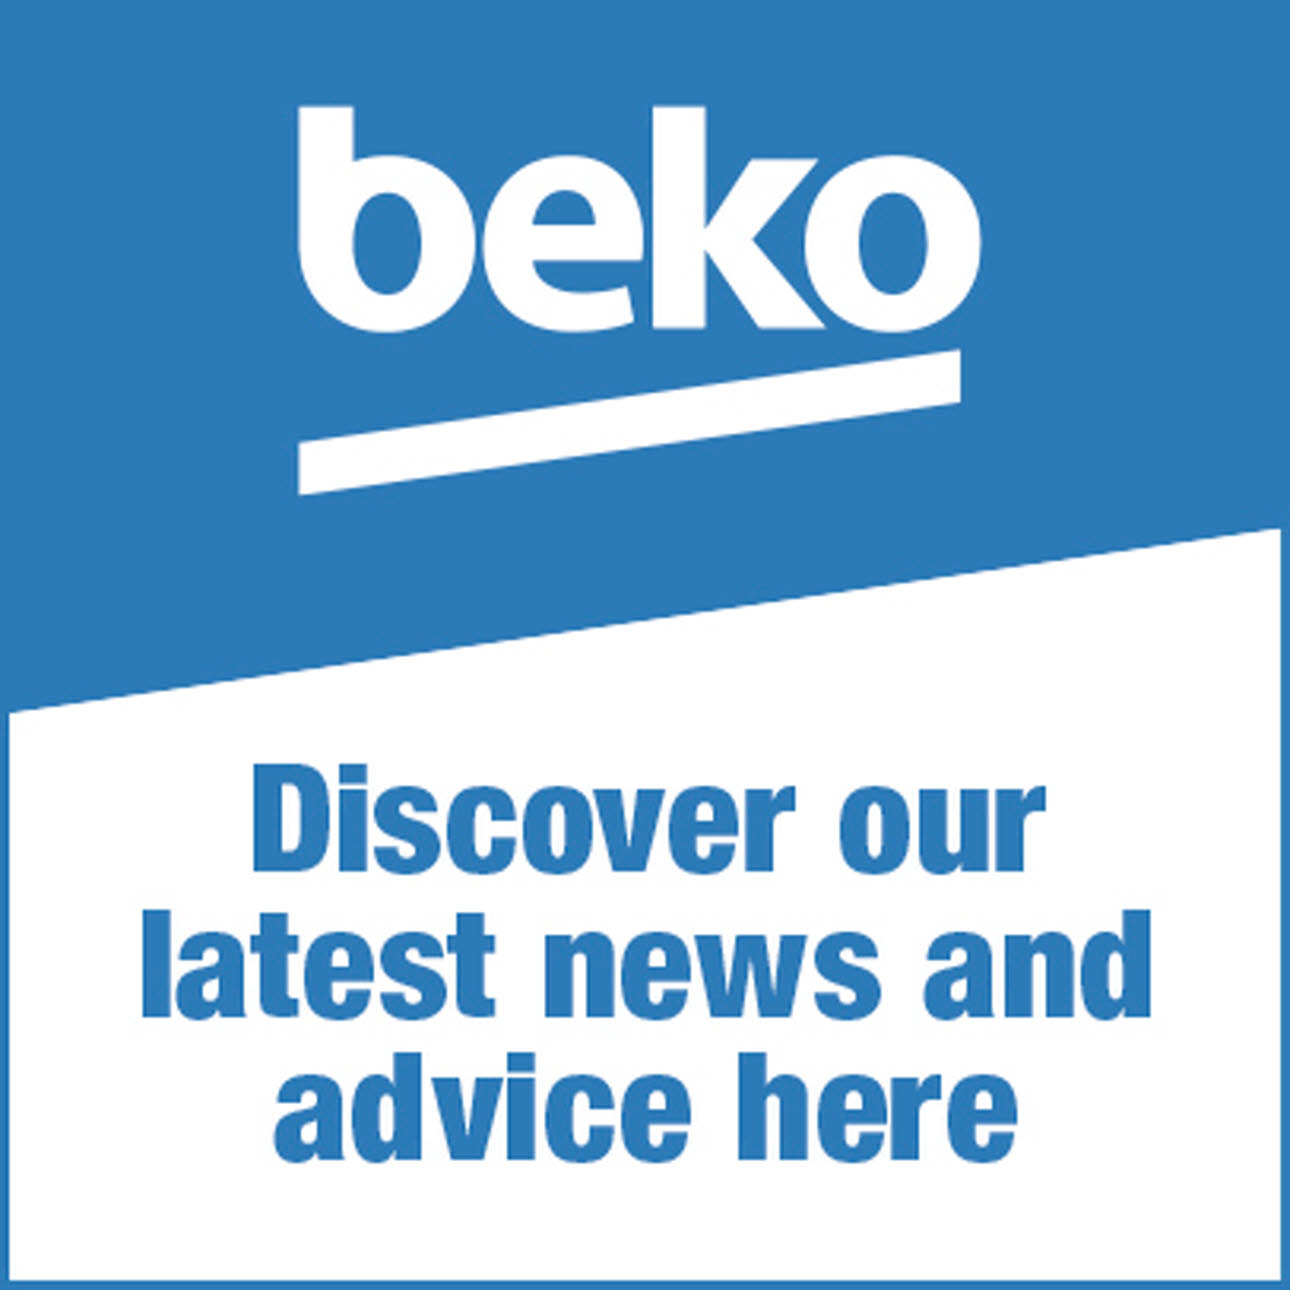 Beko news and advice